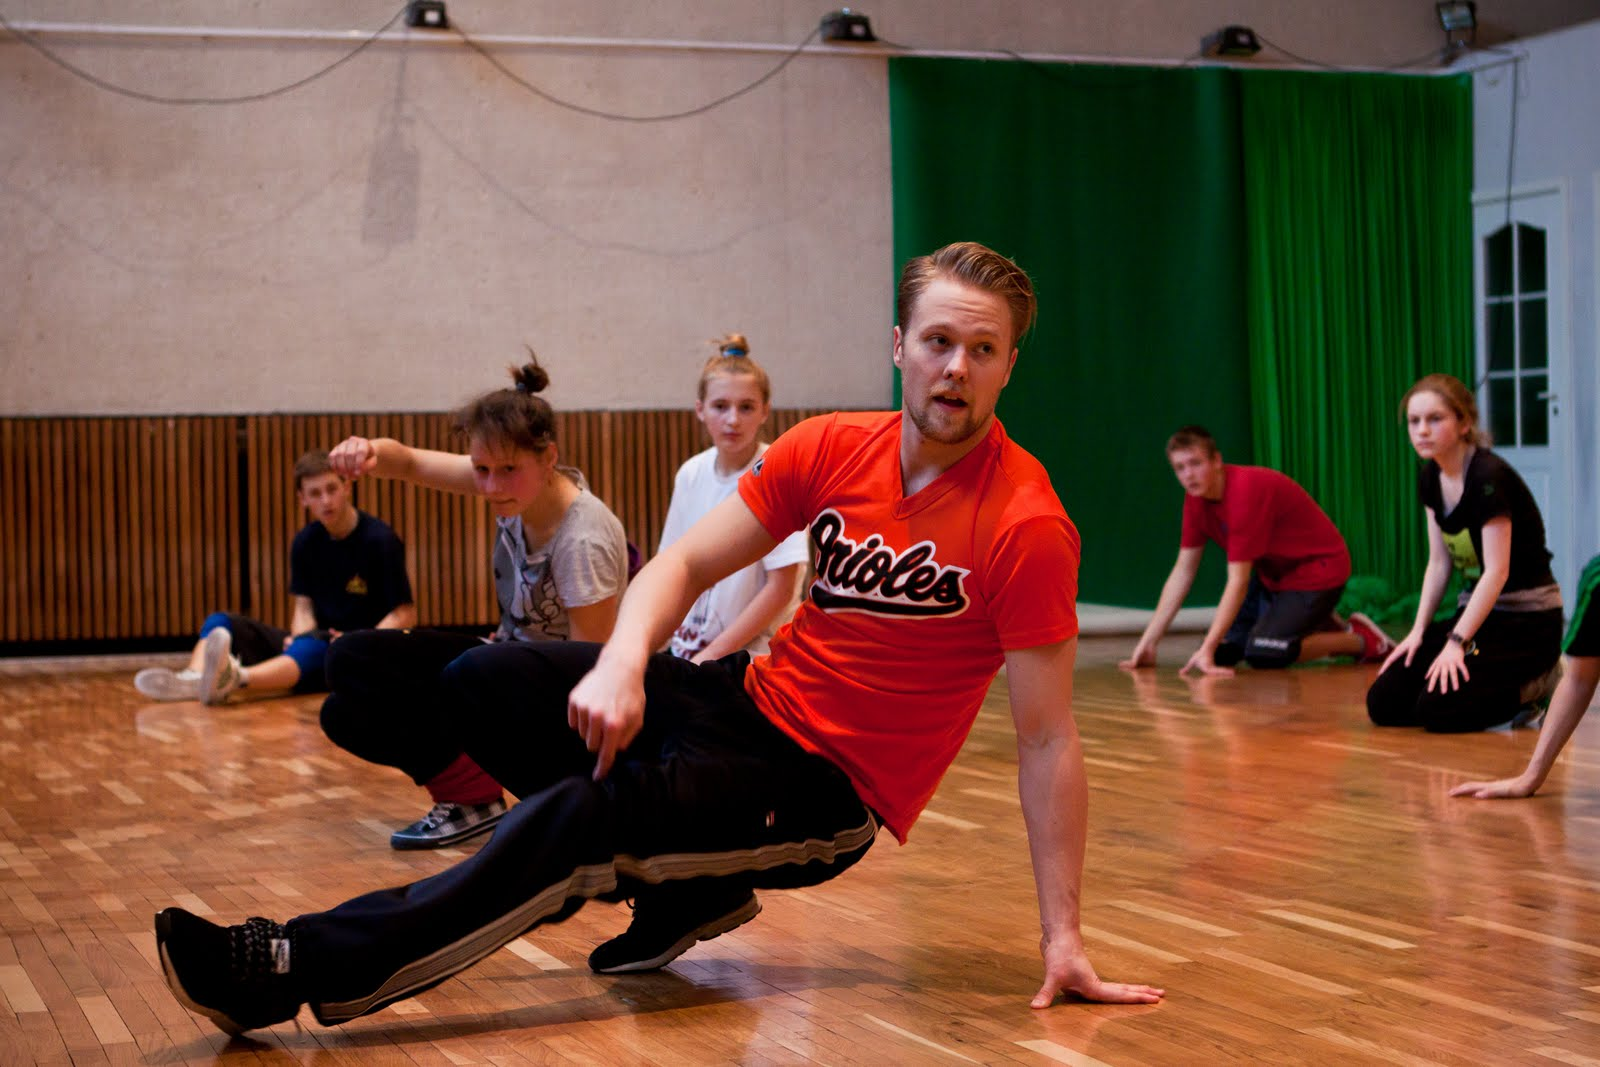 Workshop with Menno (NL)  - IMG_4297.jpg